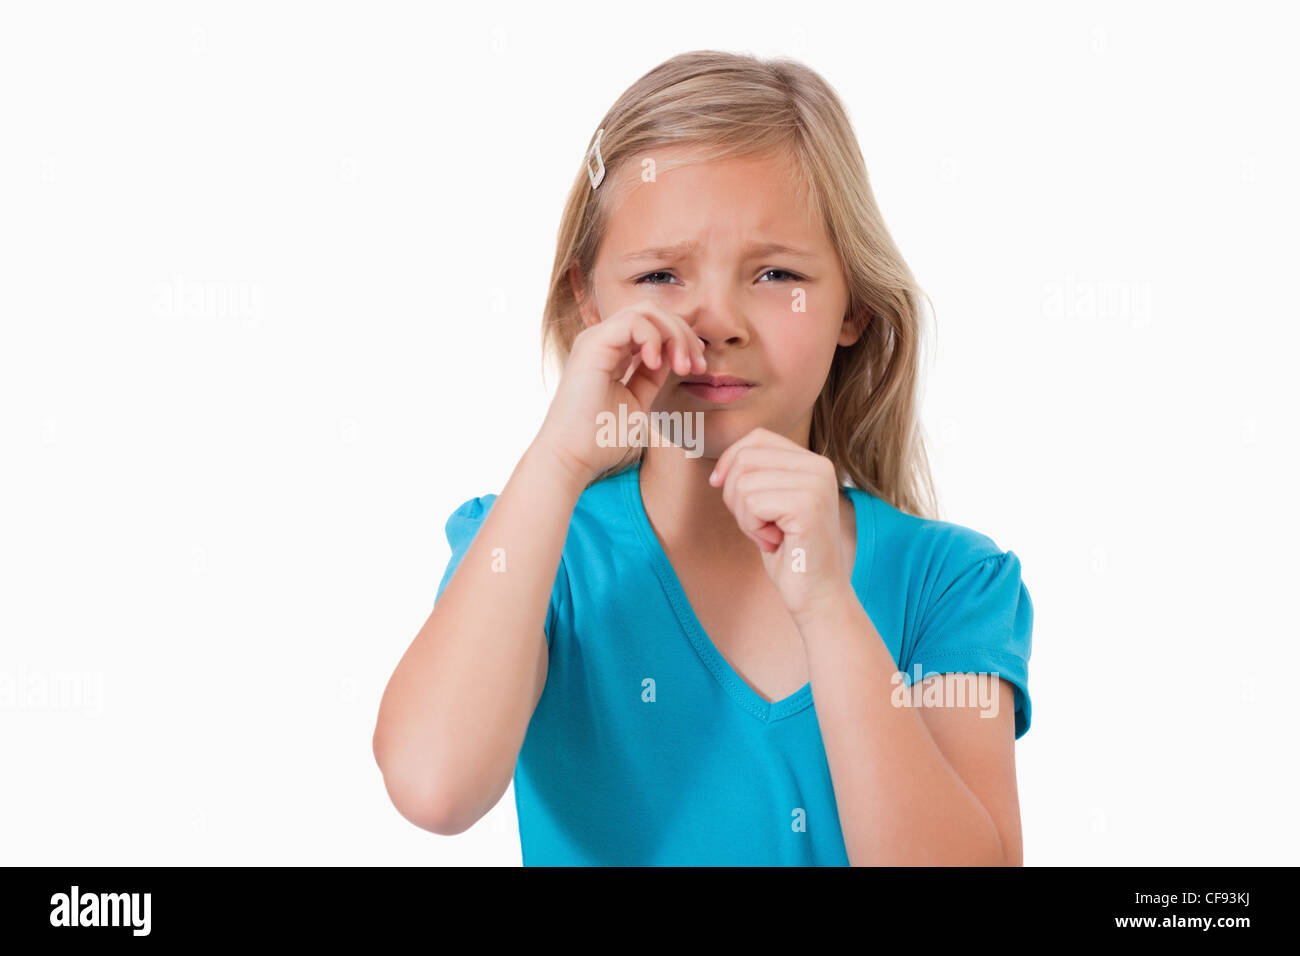 Lonely little girl crying - Stock Image